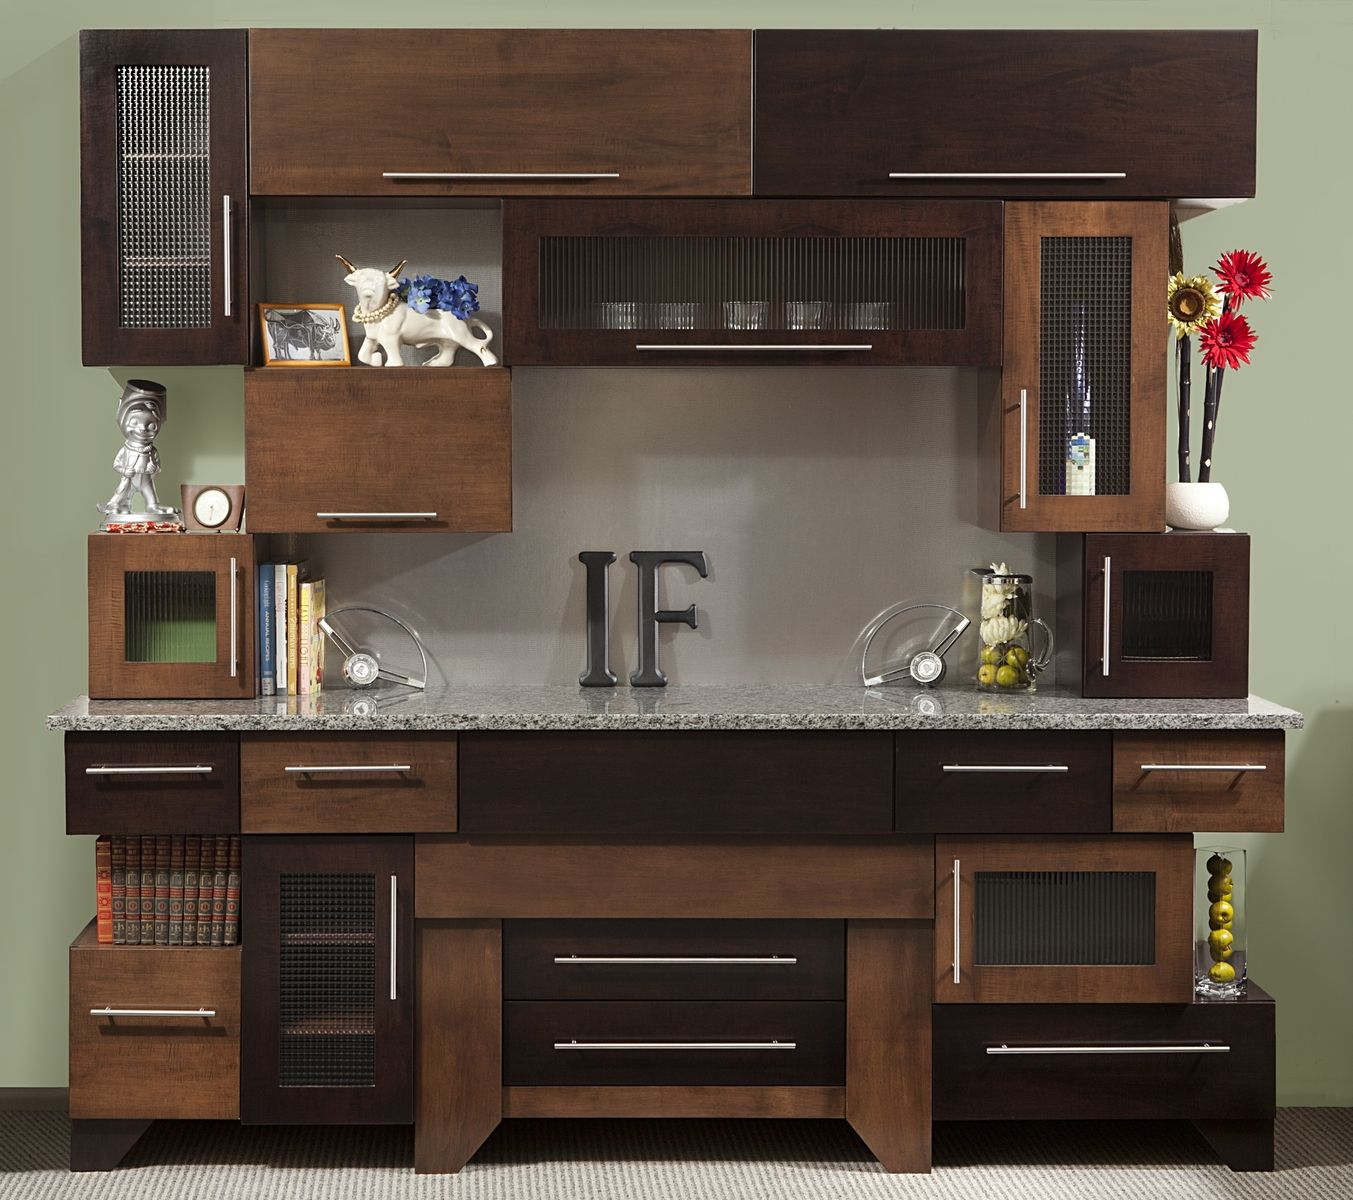 Hand made cubist cabinets kitchen modern clean in tiger for Modern kitchen furniture design